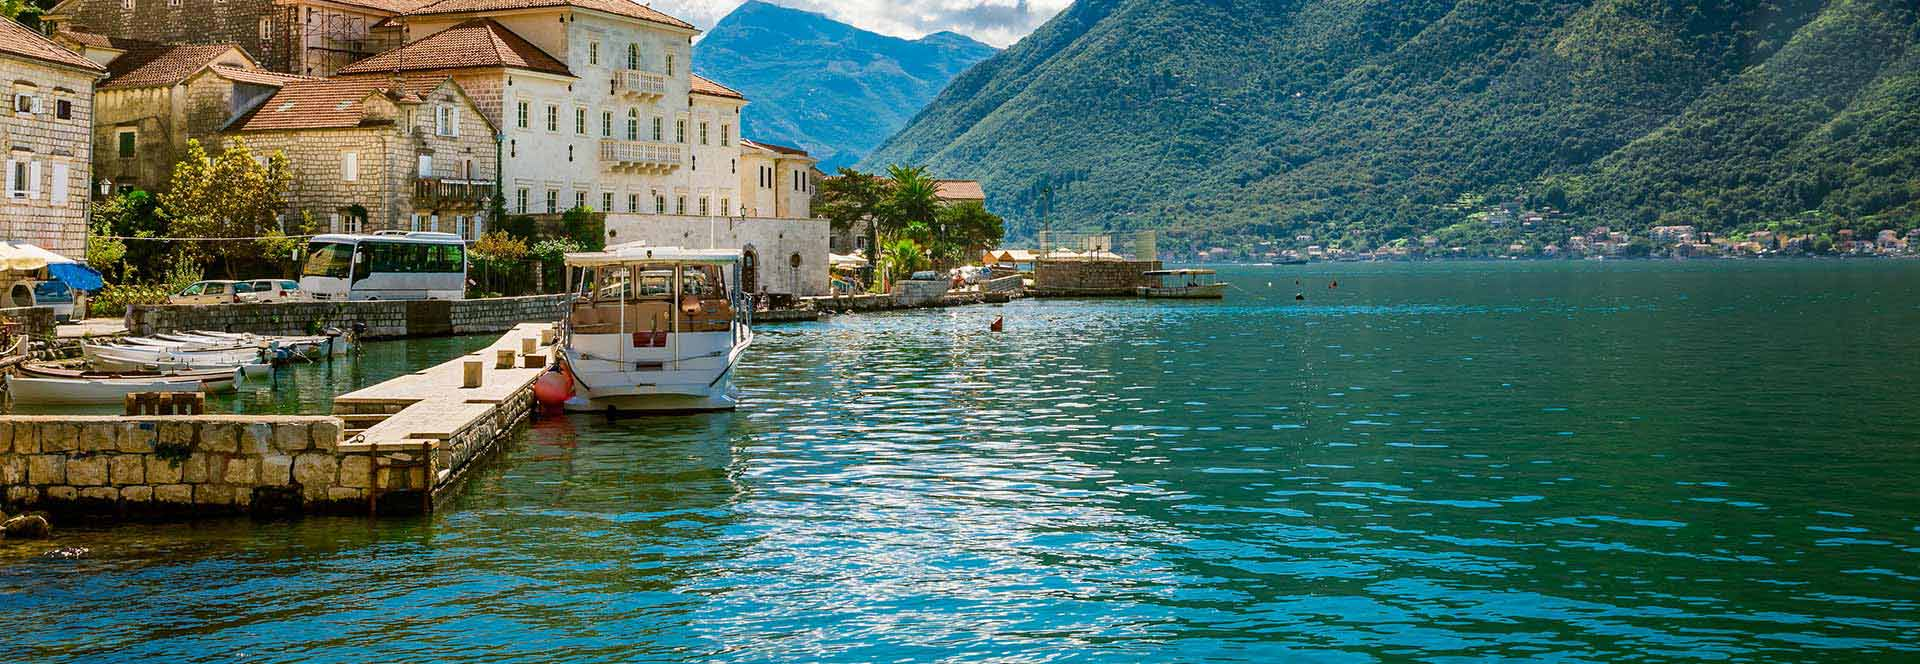 quayside and sea on balkans tour